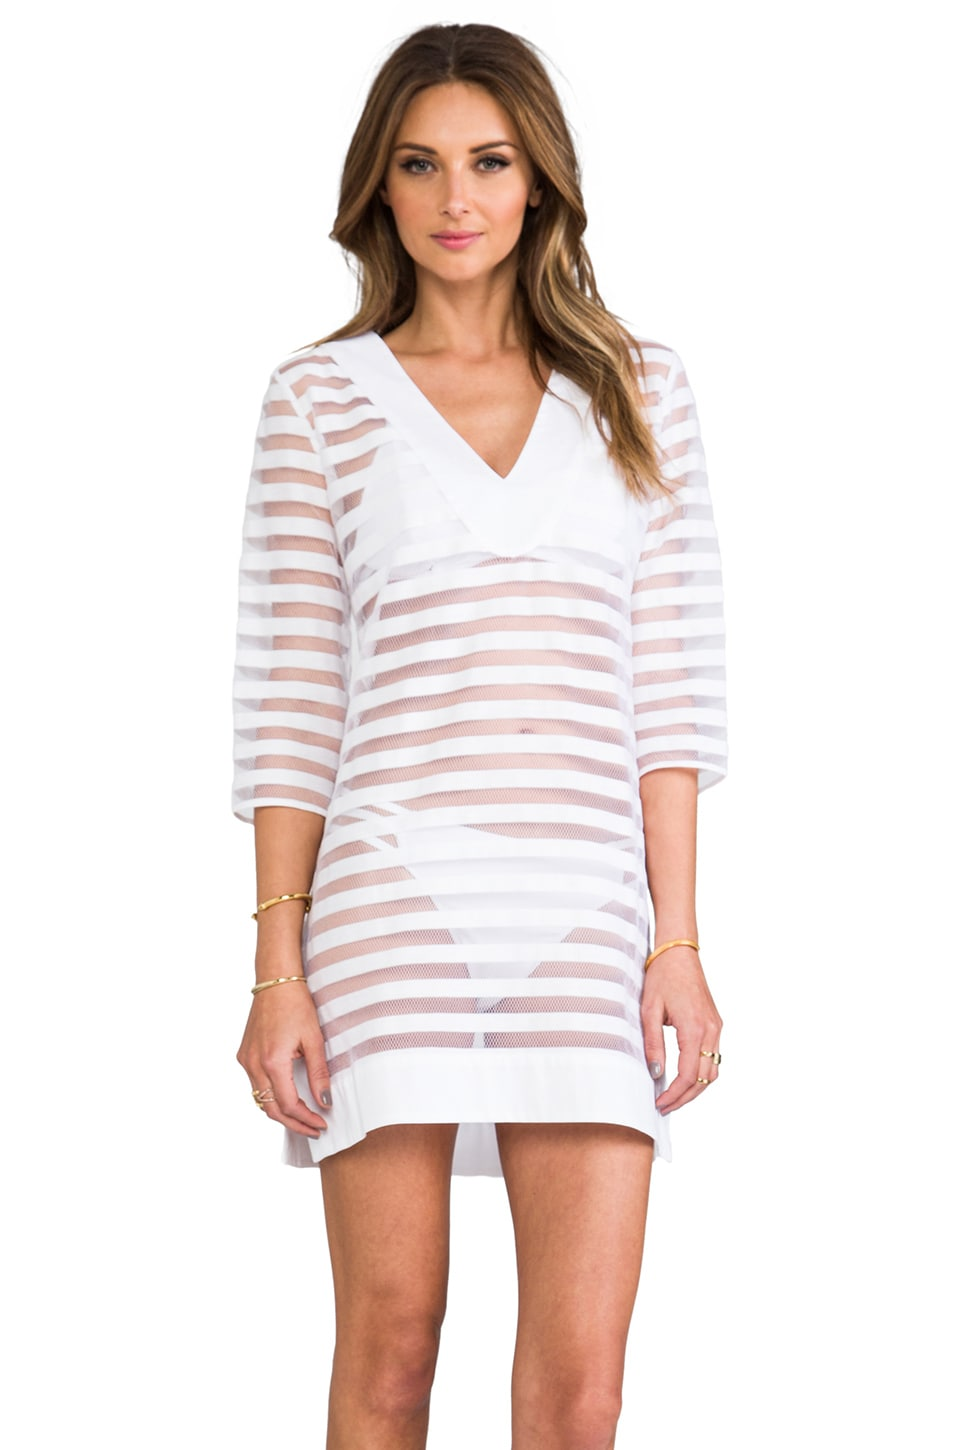 Shoshanna Pizval Stripe Dress in White